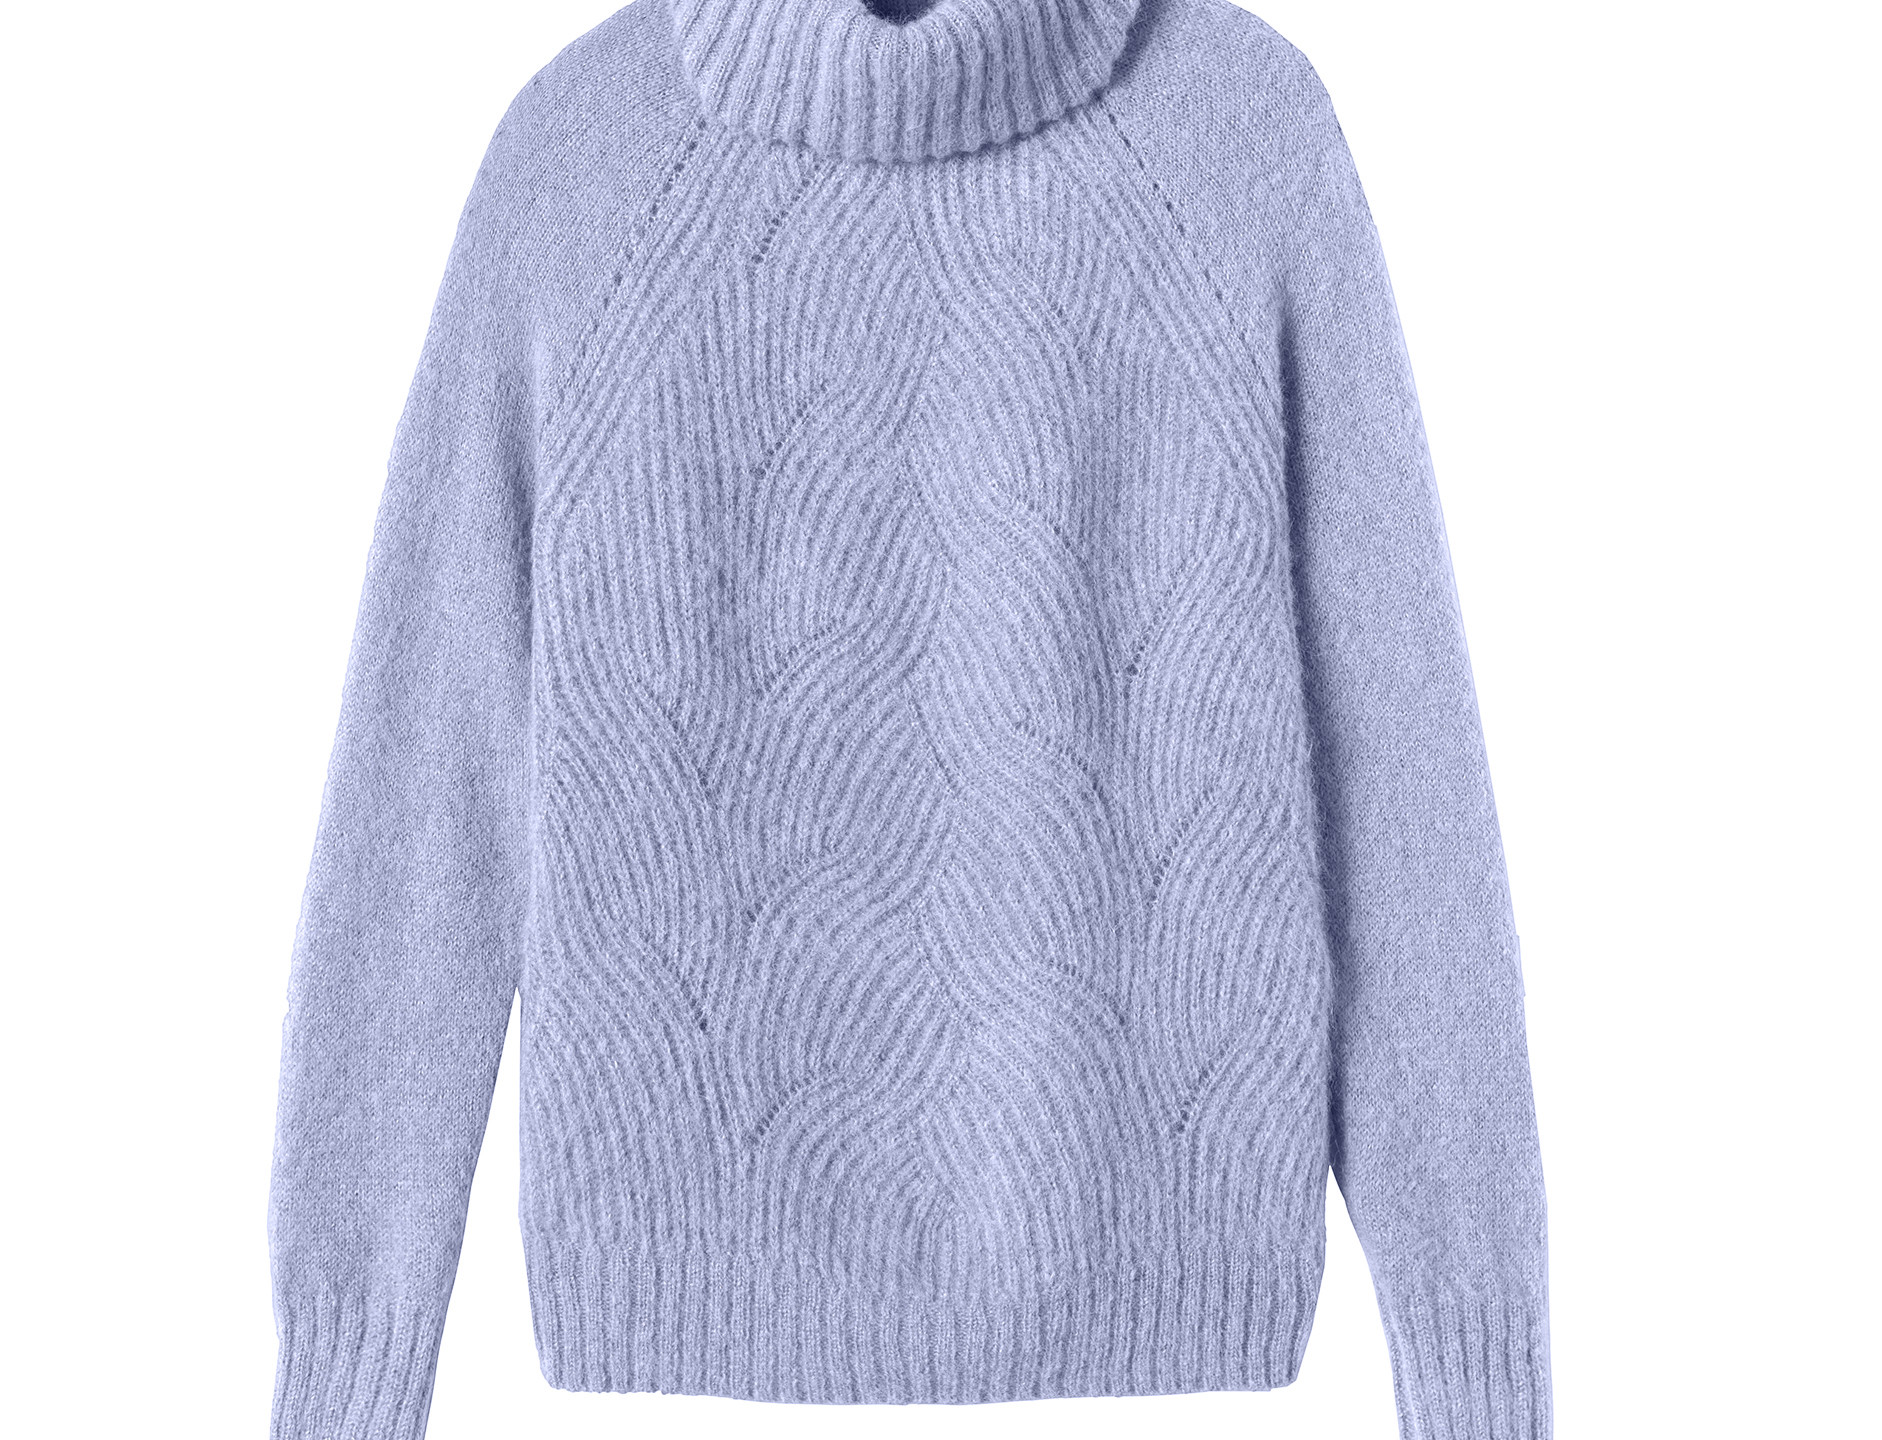 Rebecca Taylor's Pointelle Turleneck Pullover